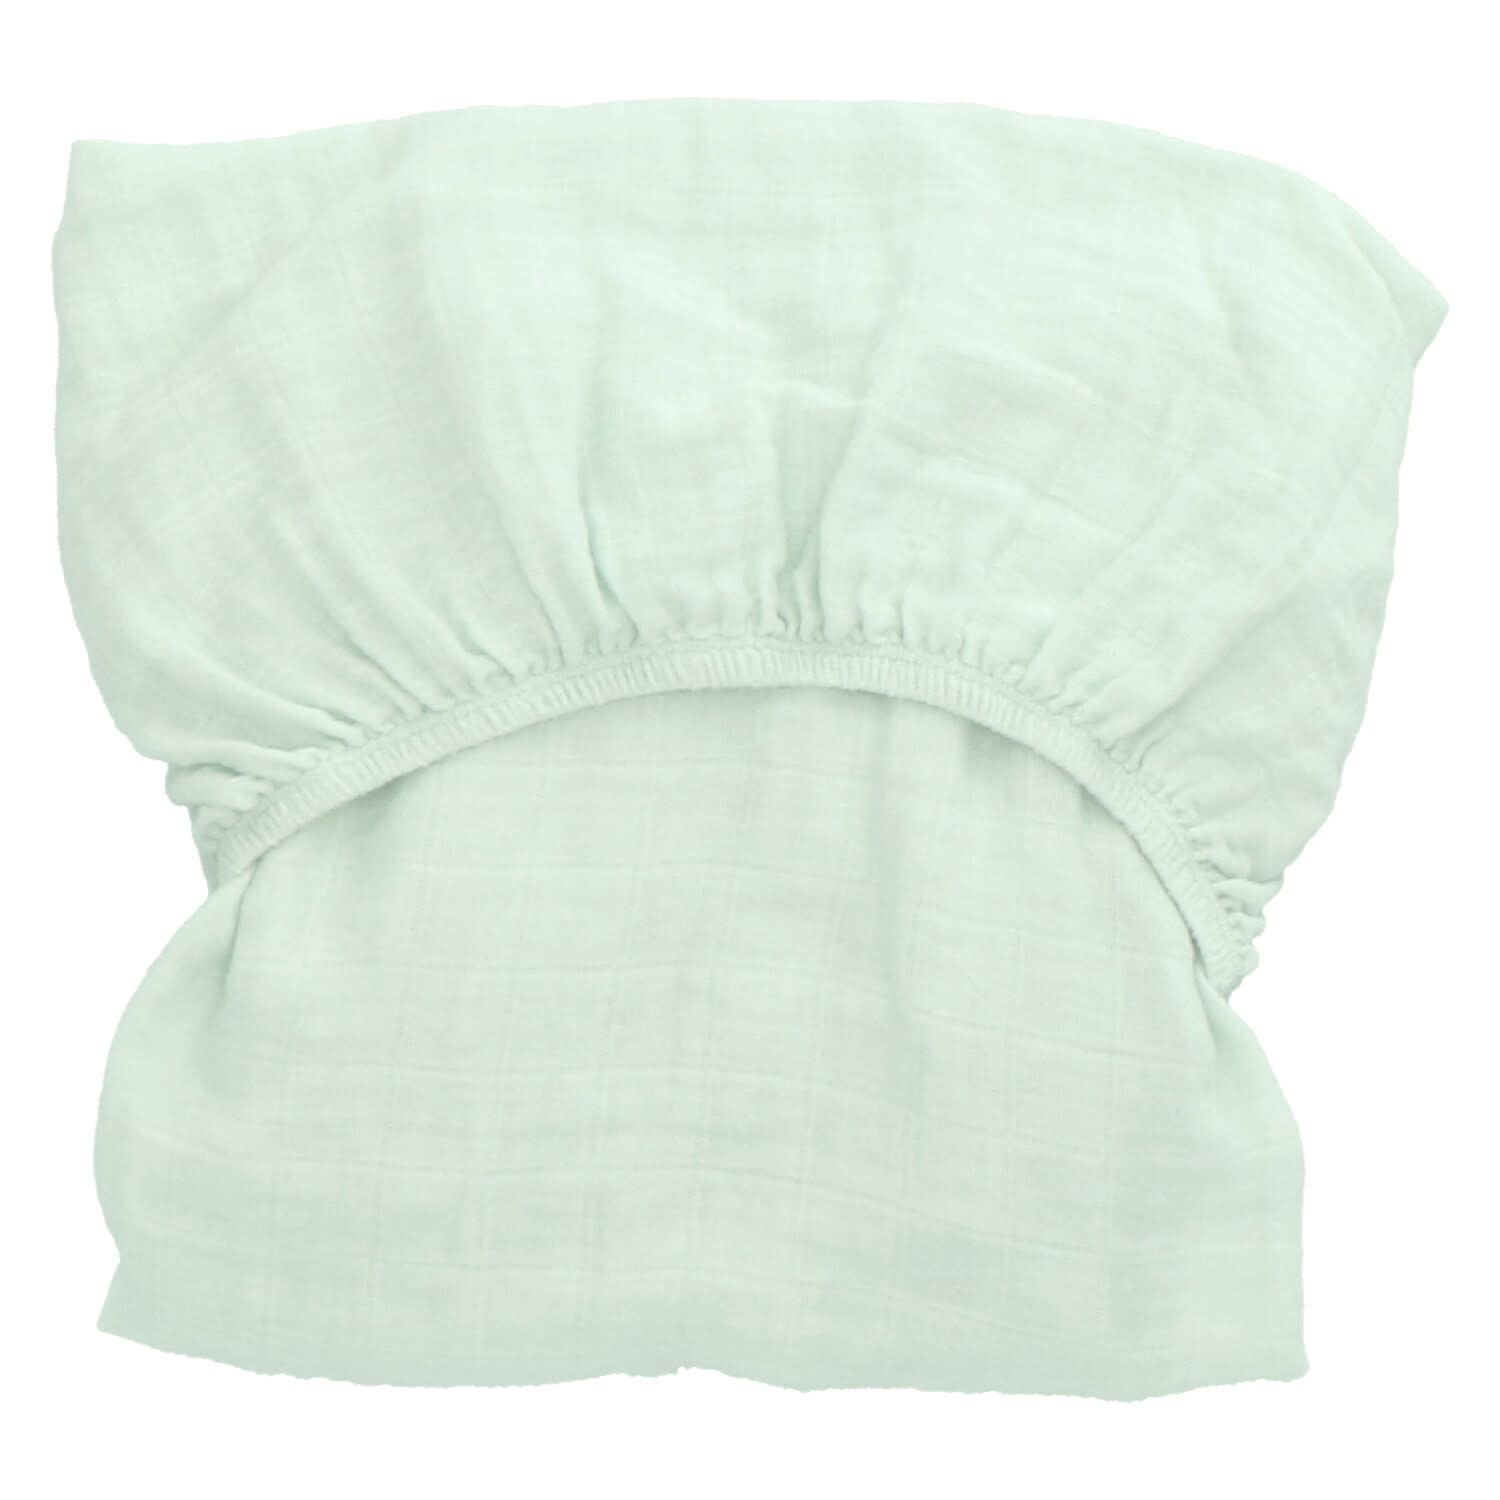 Franklin fitted sheet breeze-1